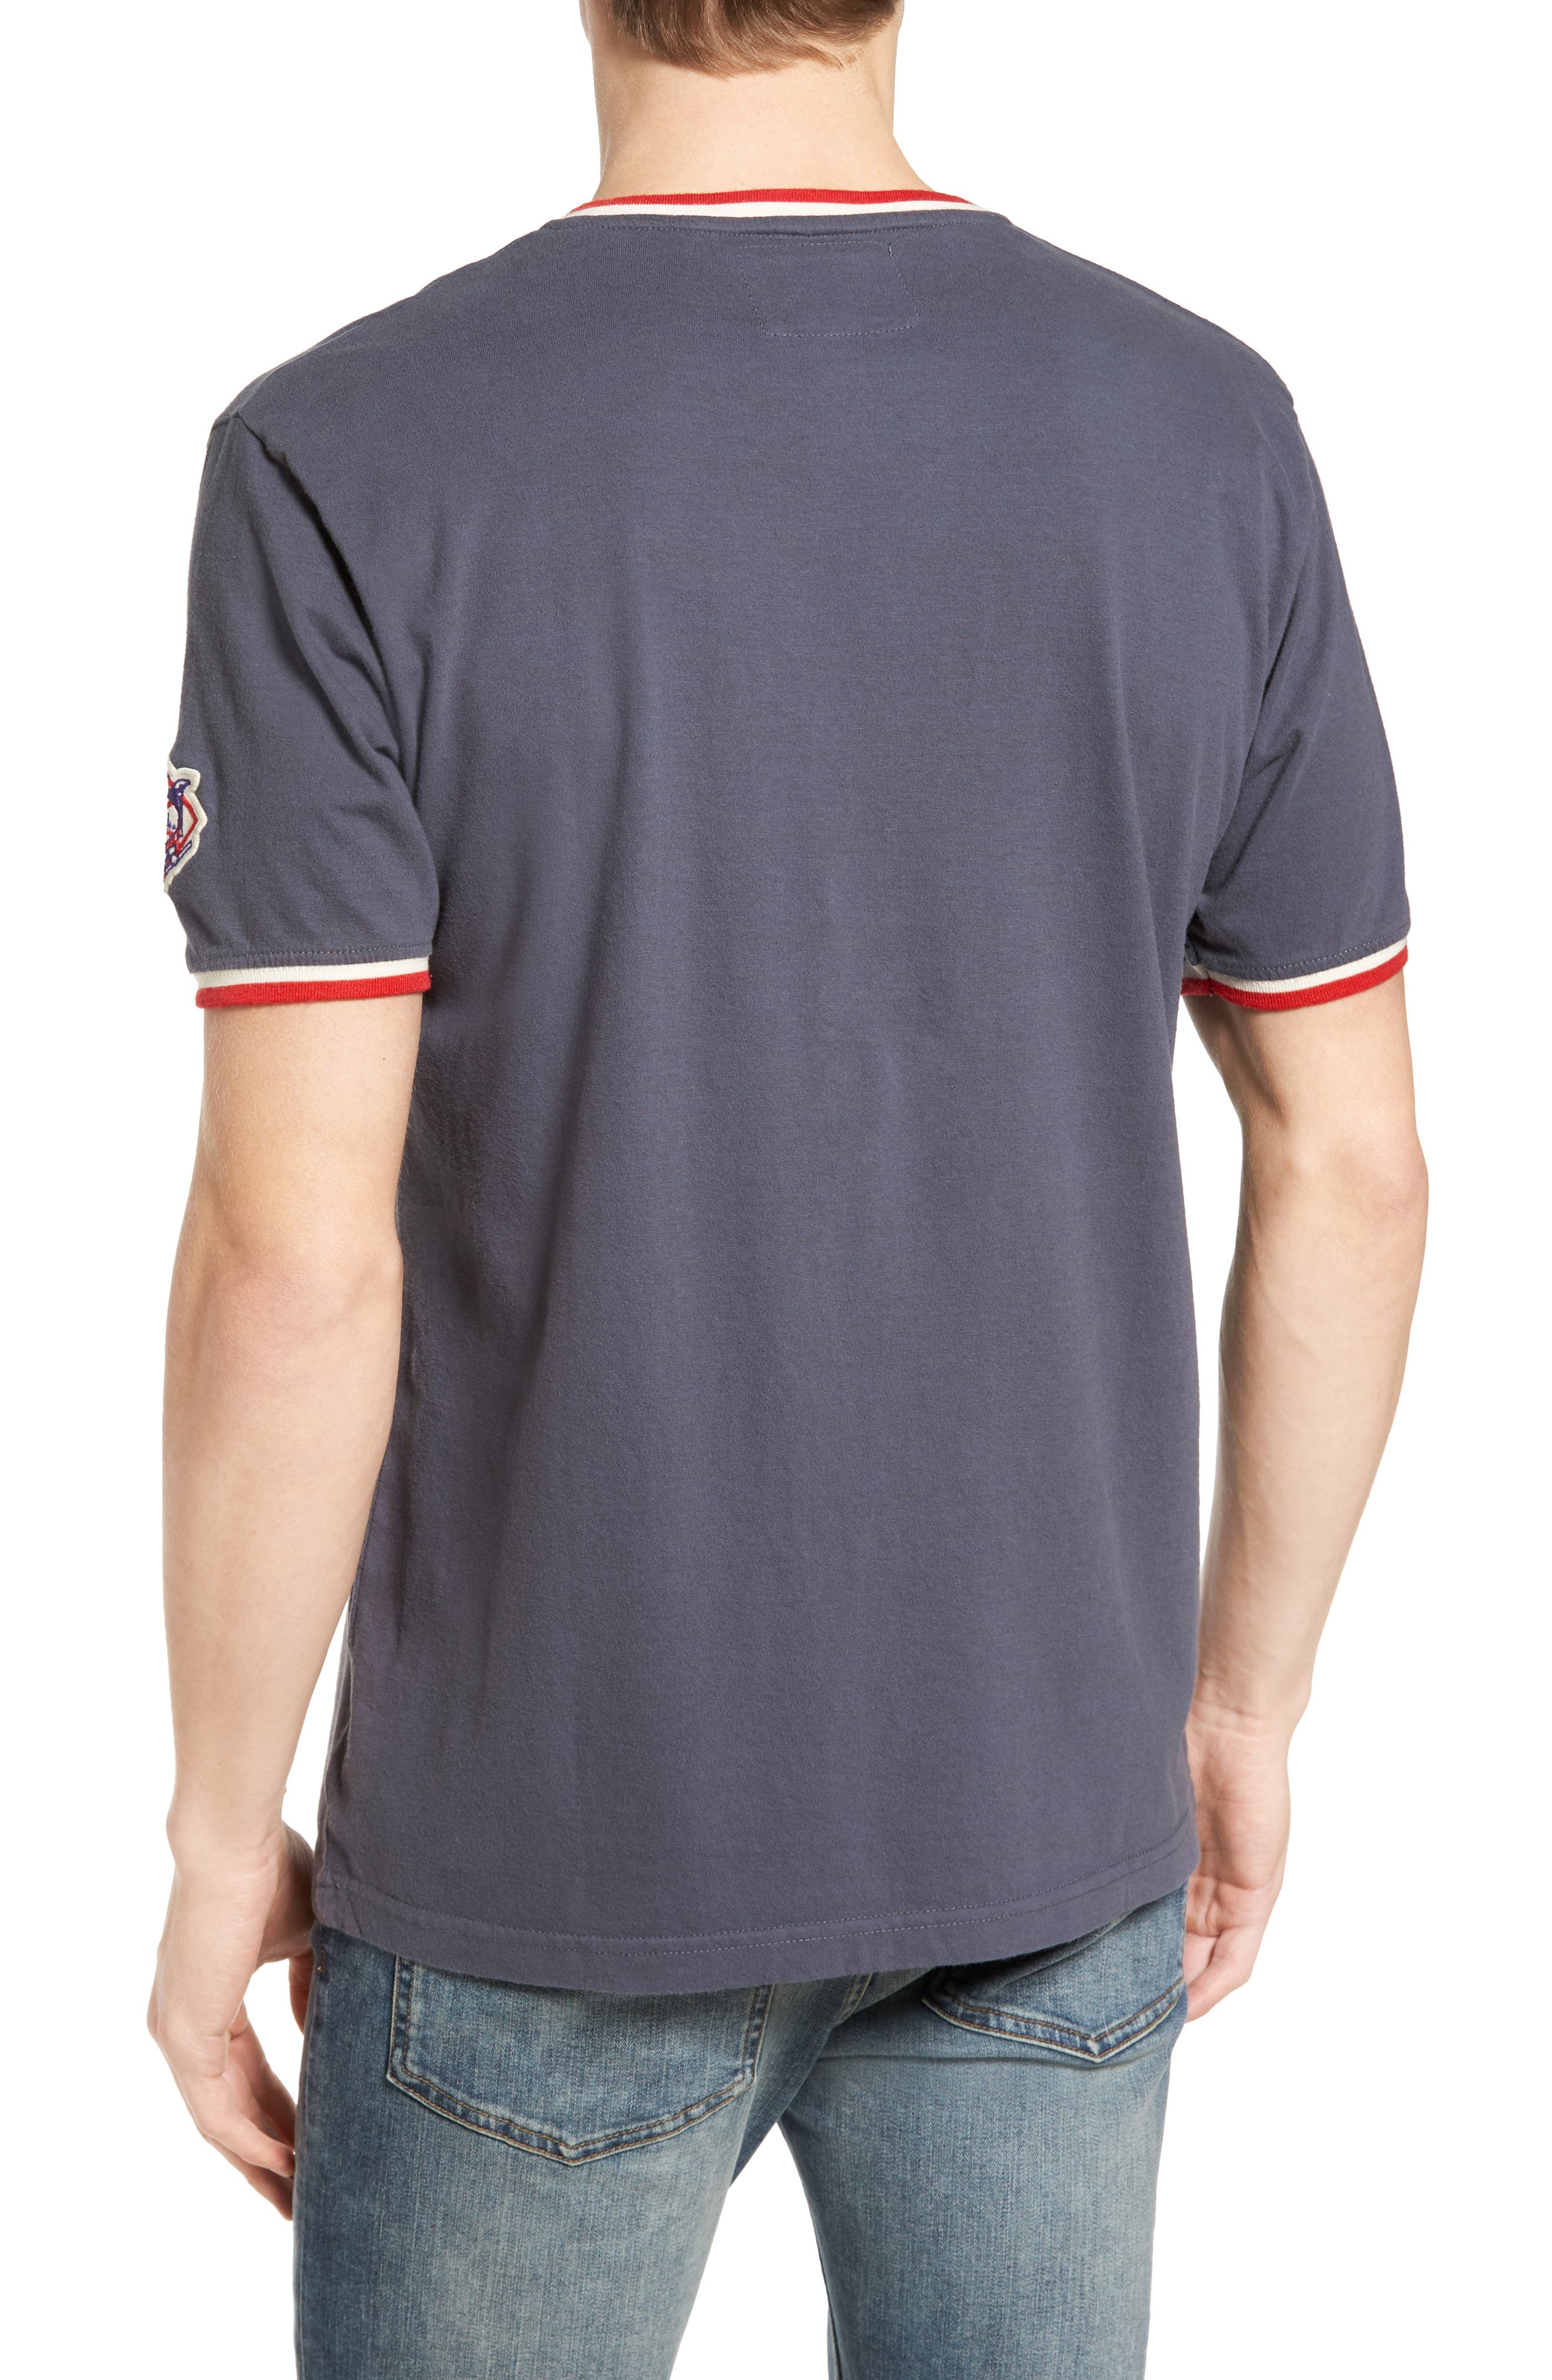 Eastwood Washington Nationals T-Shirt,                             Alternate thumbnail 2, color,                             Navy